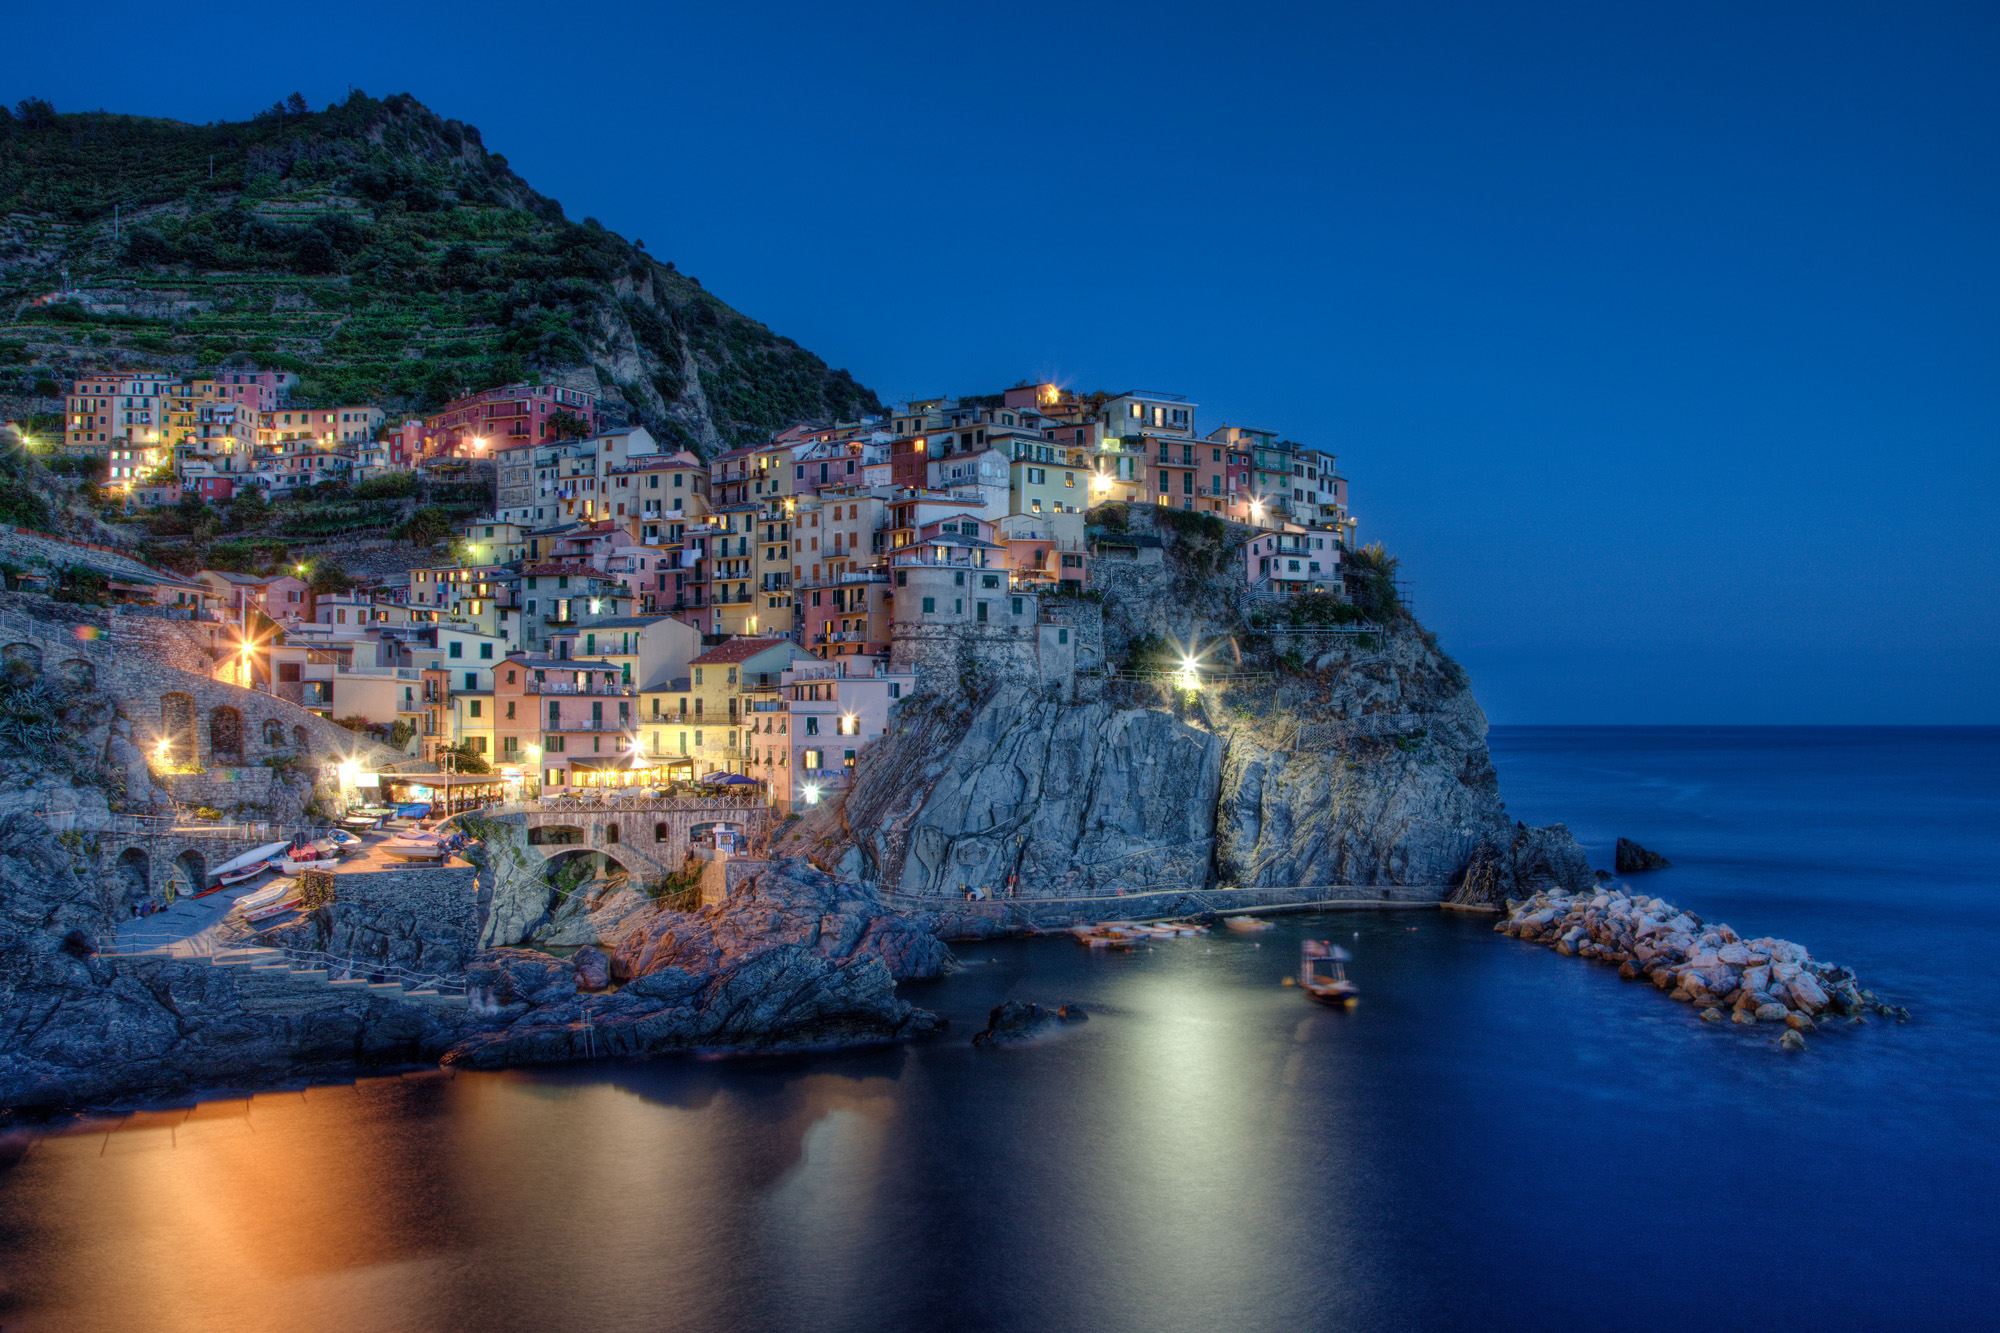 Manarola by Night © Diego Bonacina, PhotographyBlogger.net